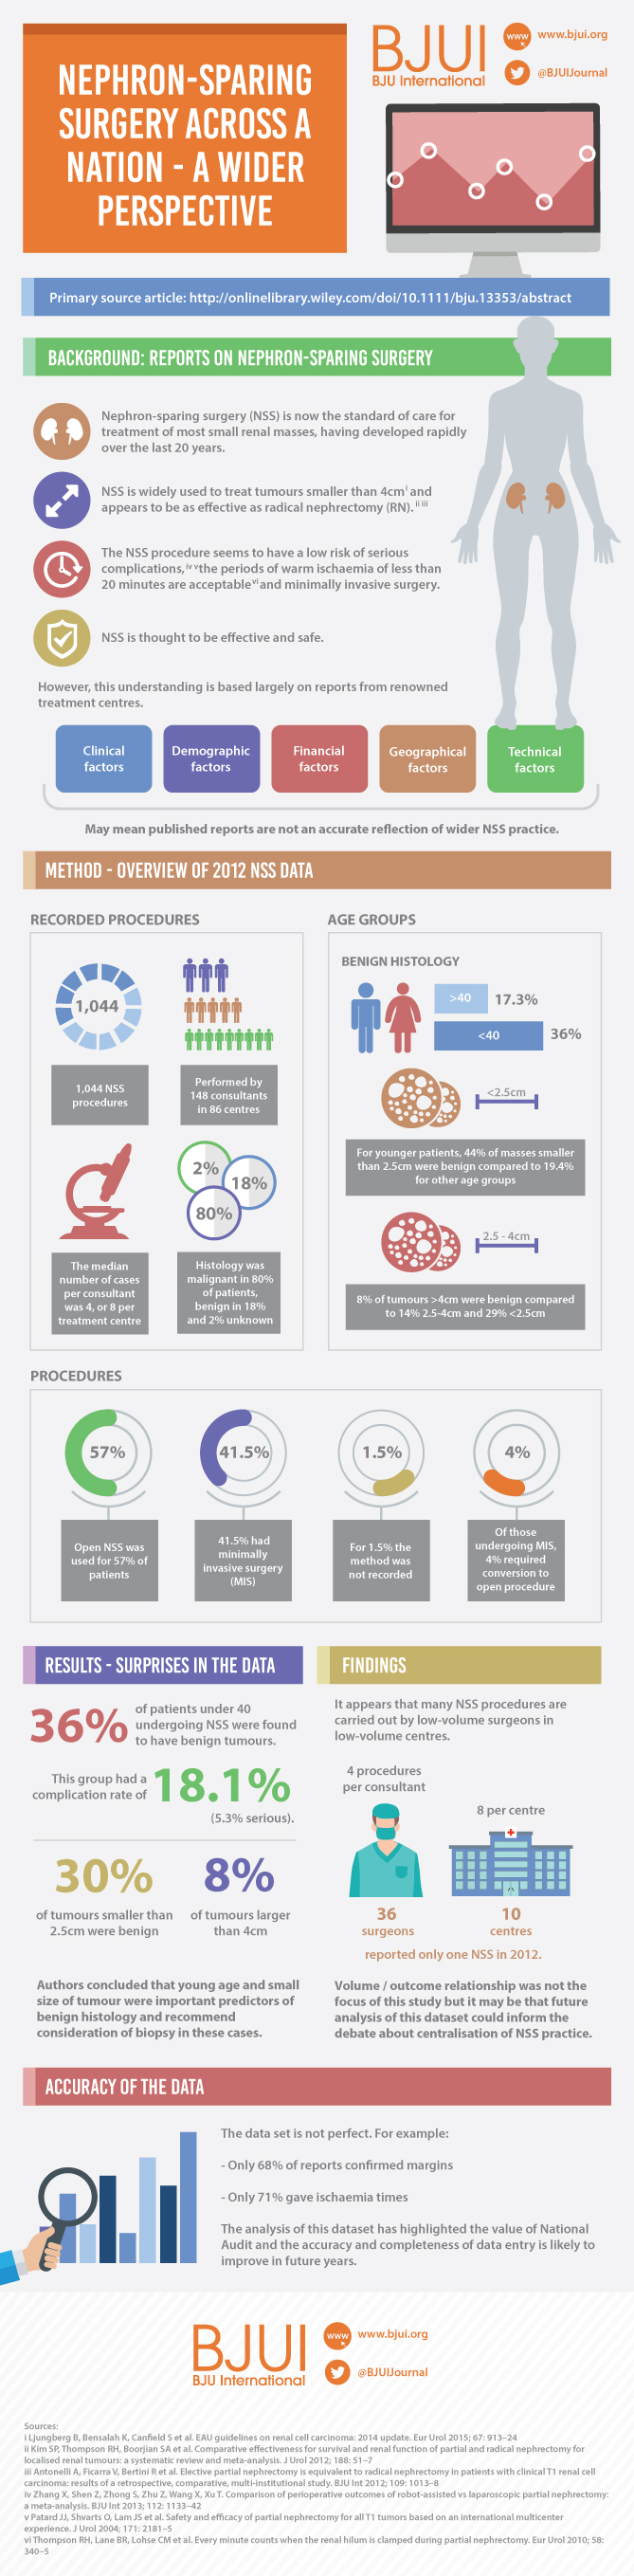 BAUS 2012 national partial nephrectomy audit infographic